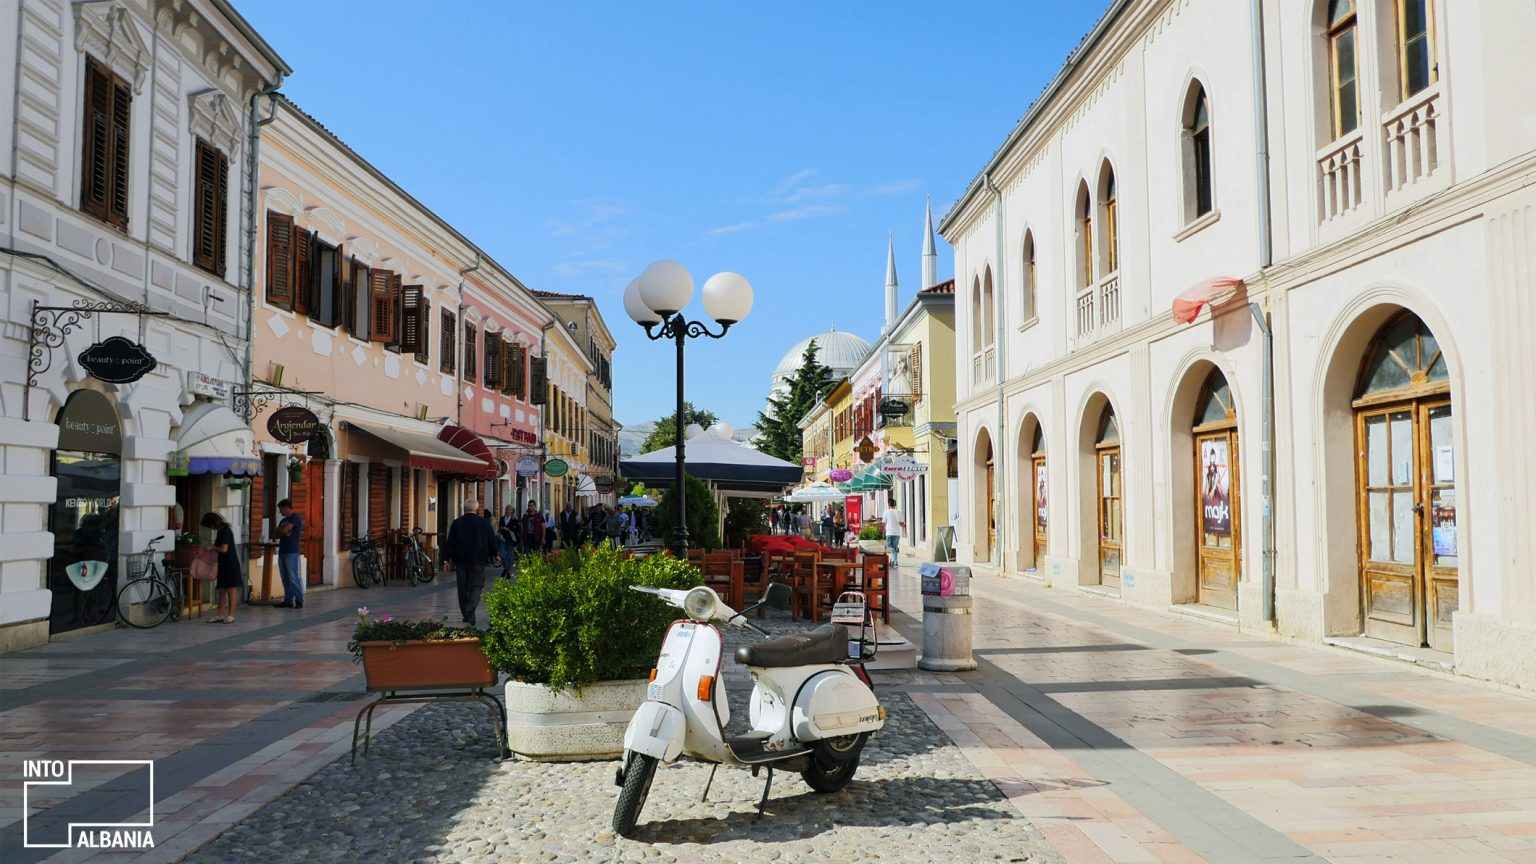 Shkodra Promenade, photo by IntoAlbania.